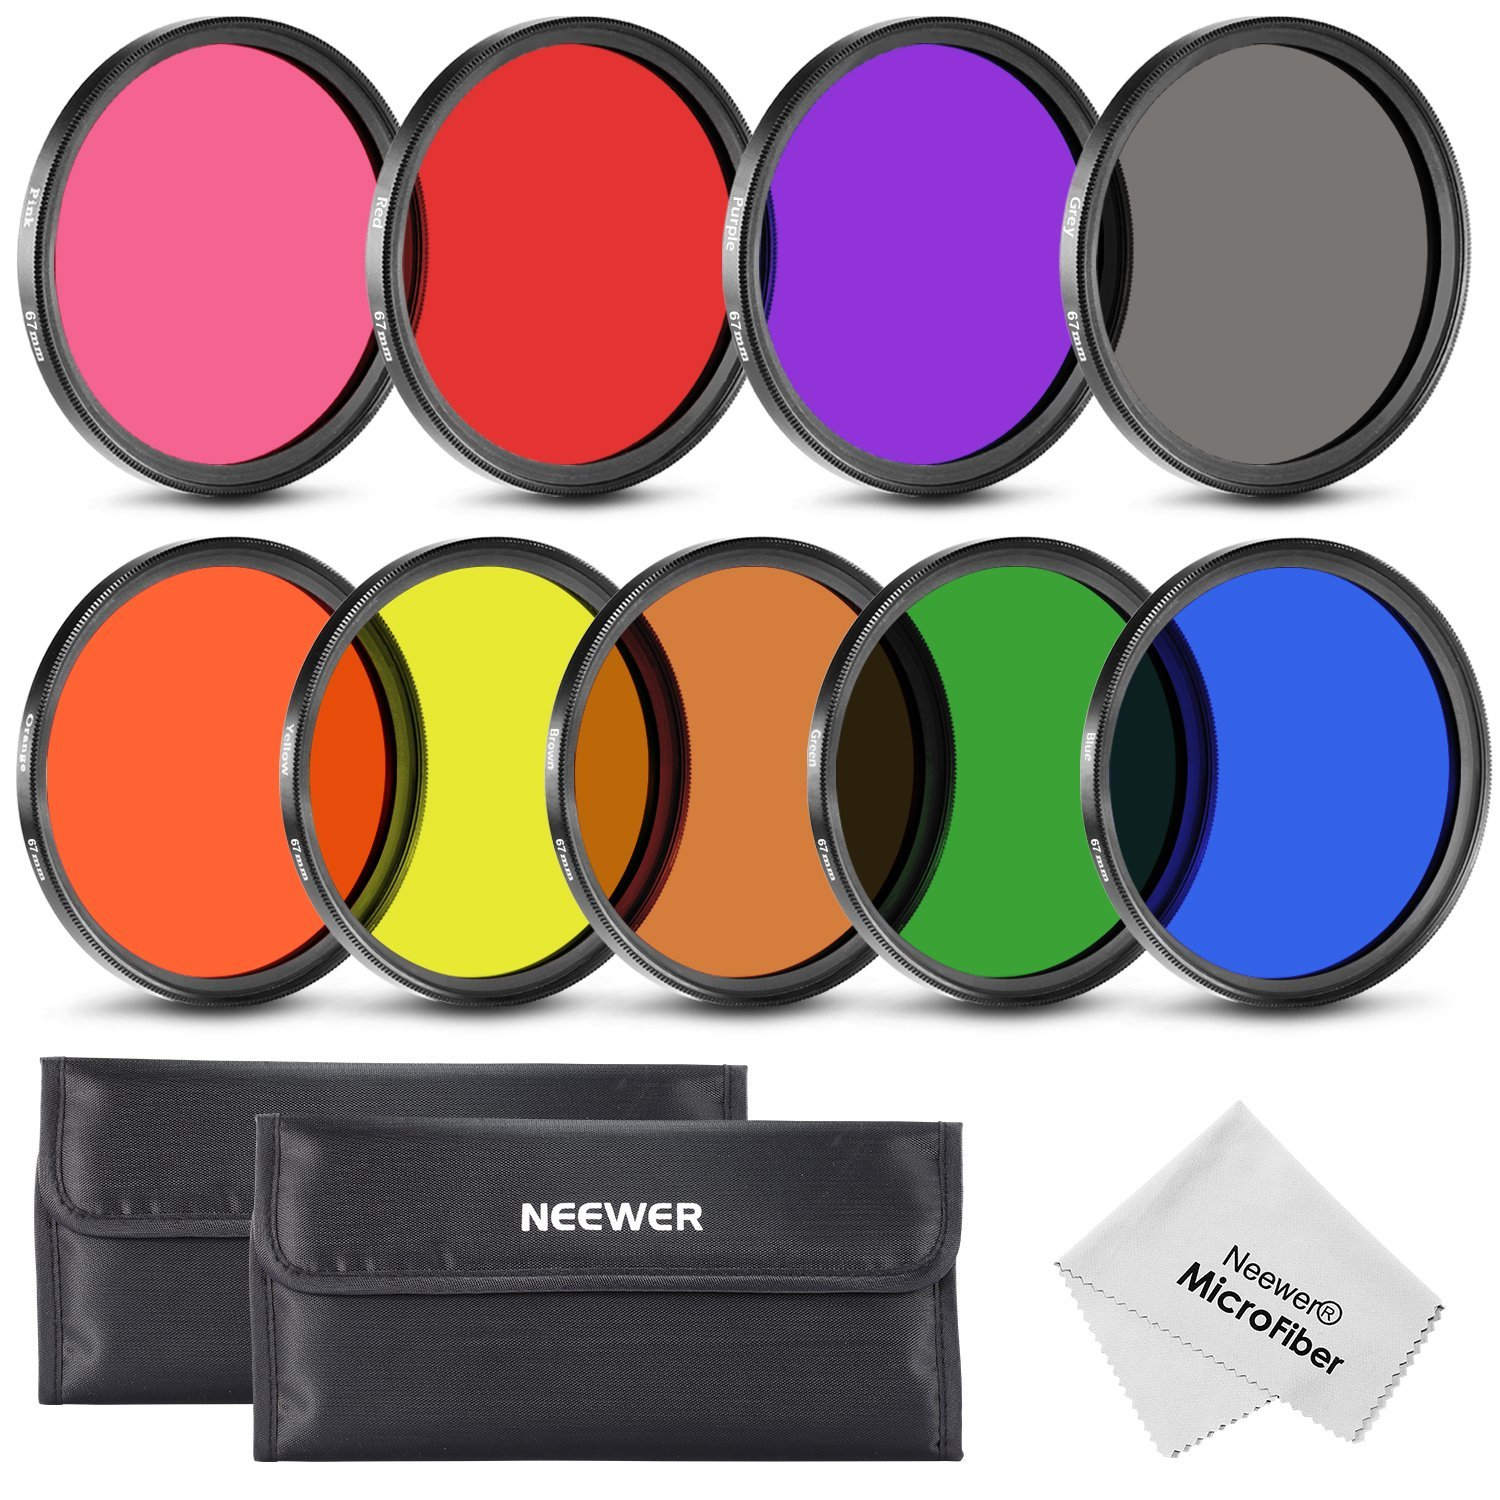 Neewer 67MM 9 Pieces Full Color ND Filter Kit for Camera Lens with 67MM Thread Size - Red Orange Blue Yellow Green Brown Purple Pink and Gray ND Filters, Carrying Pouch and Microfiber Cleaning Cloth by Neewer